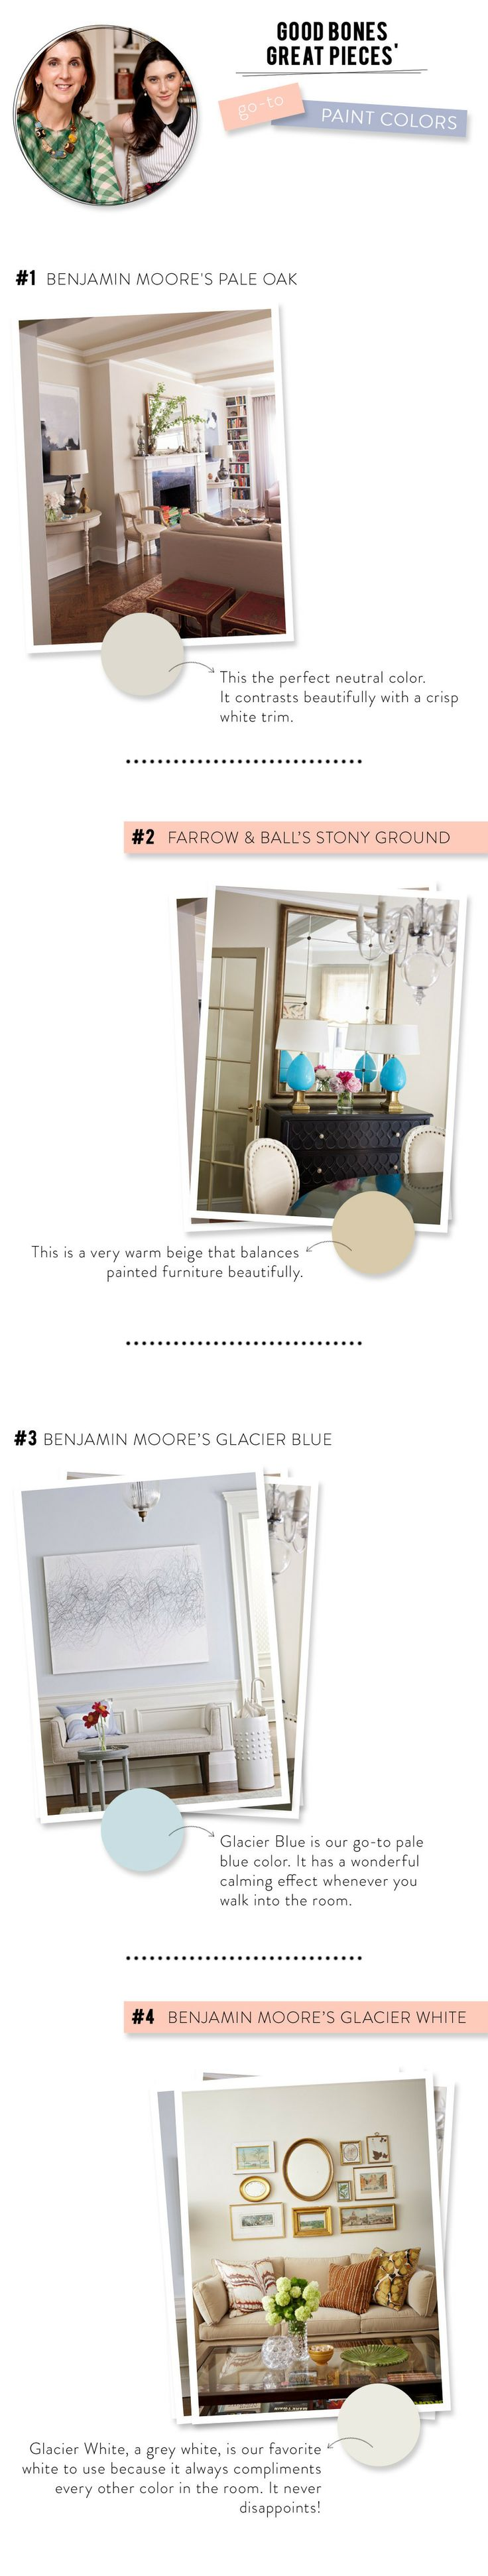 Good Bones, Great Pieces' Go-To Paint Colors  Read more - http://www.stylemepretty.com/living/2013/09/30/good-bones-great-pieces-go-to-paint-colours/